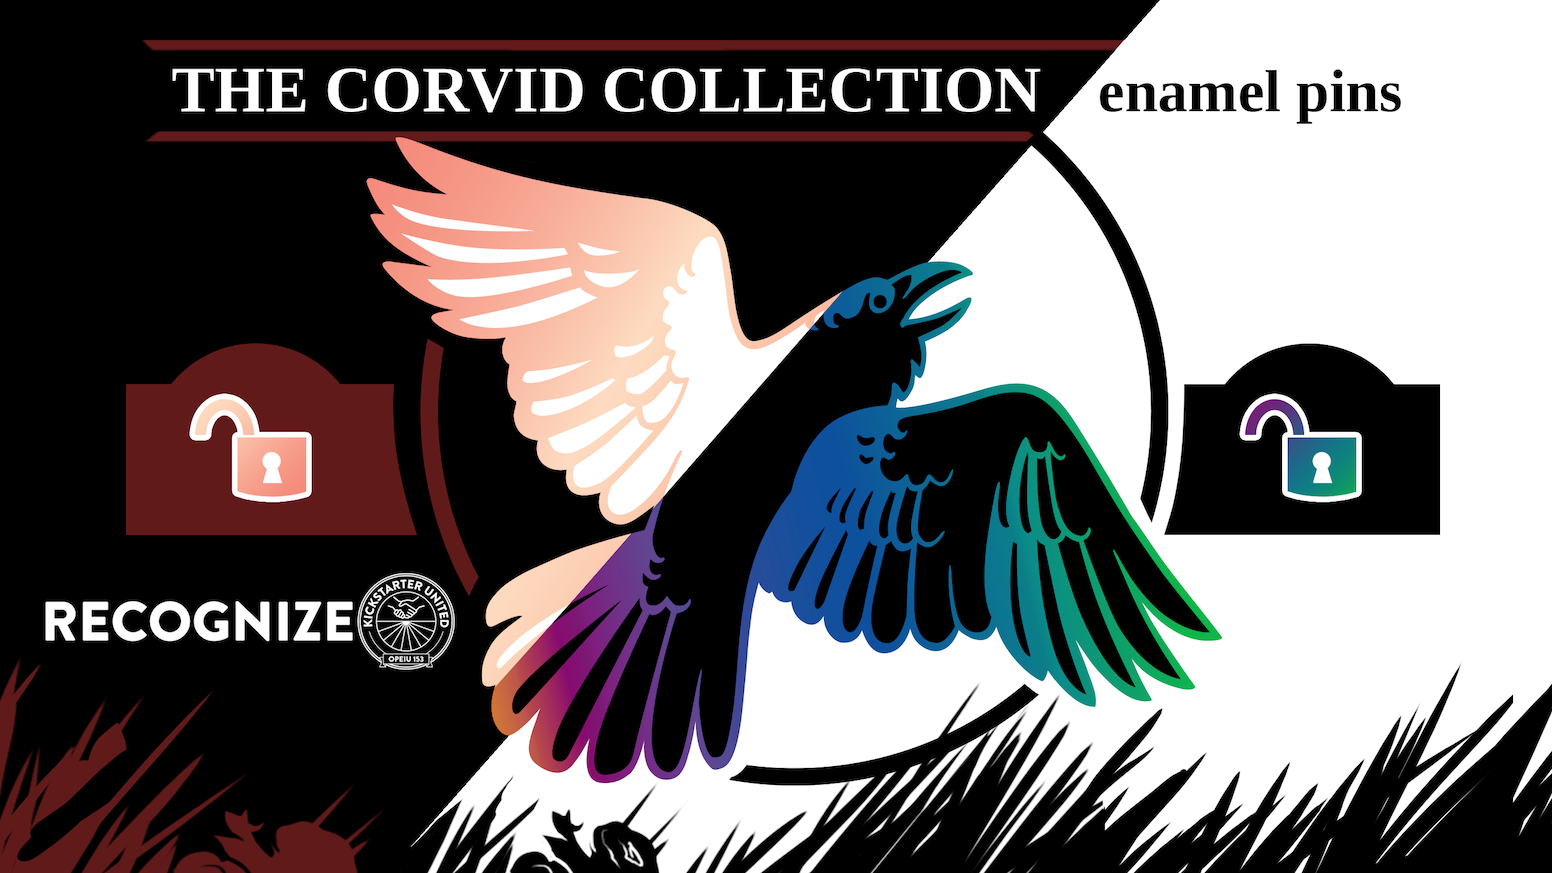 Iridescent enamel pins, courtesy of your favorite bird-themed shop, where we #RecognizeKSRU